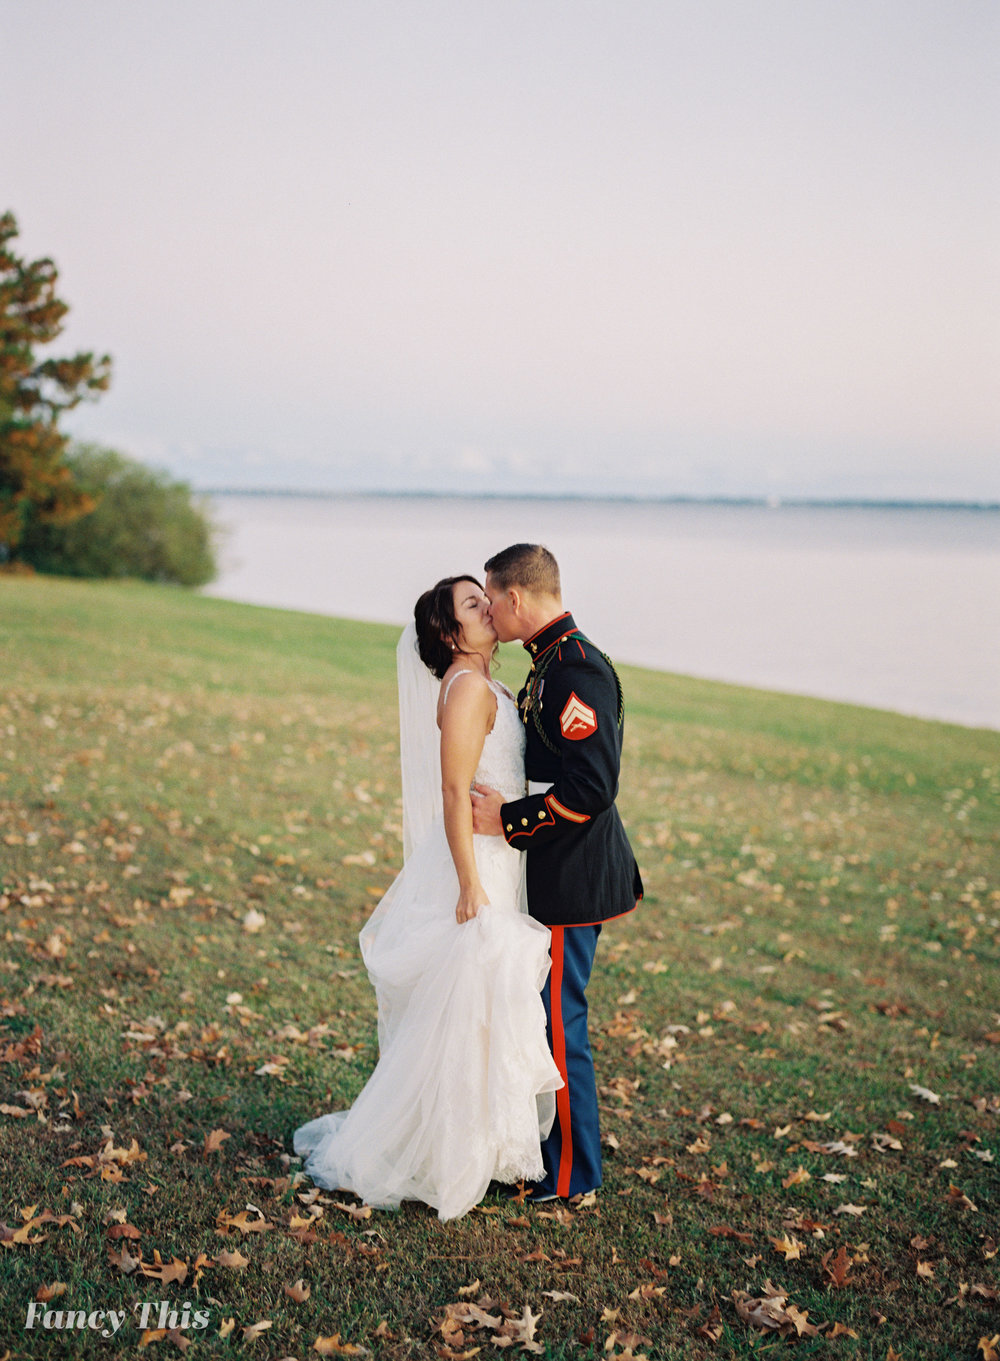 edentonwedding_linksatmulberryhillweddingphotography_fancythis-314.jpg